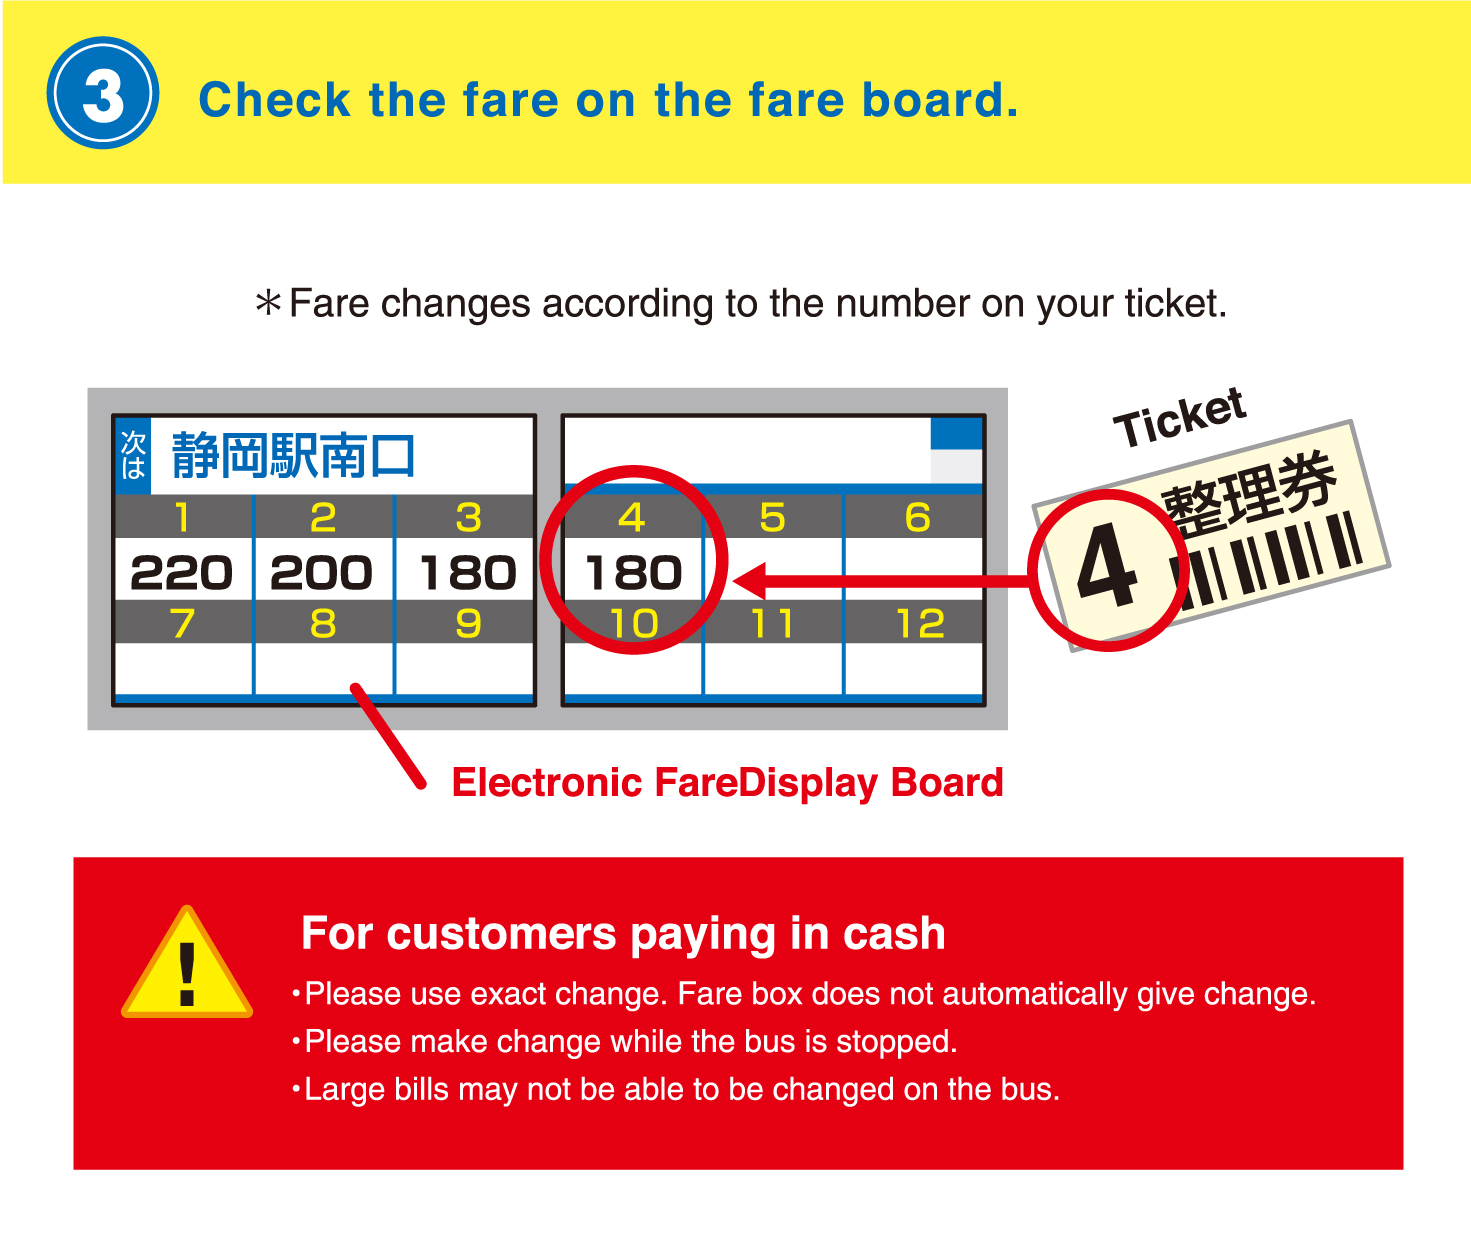 Check the fare on the fare board.